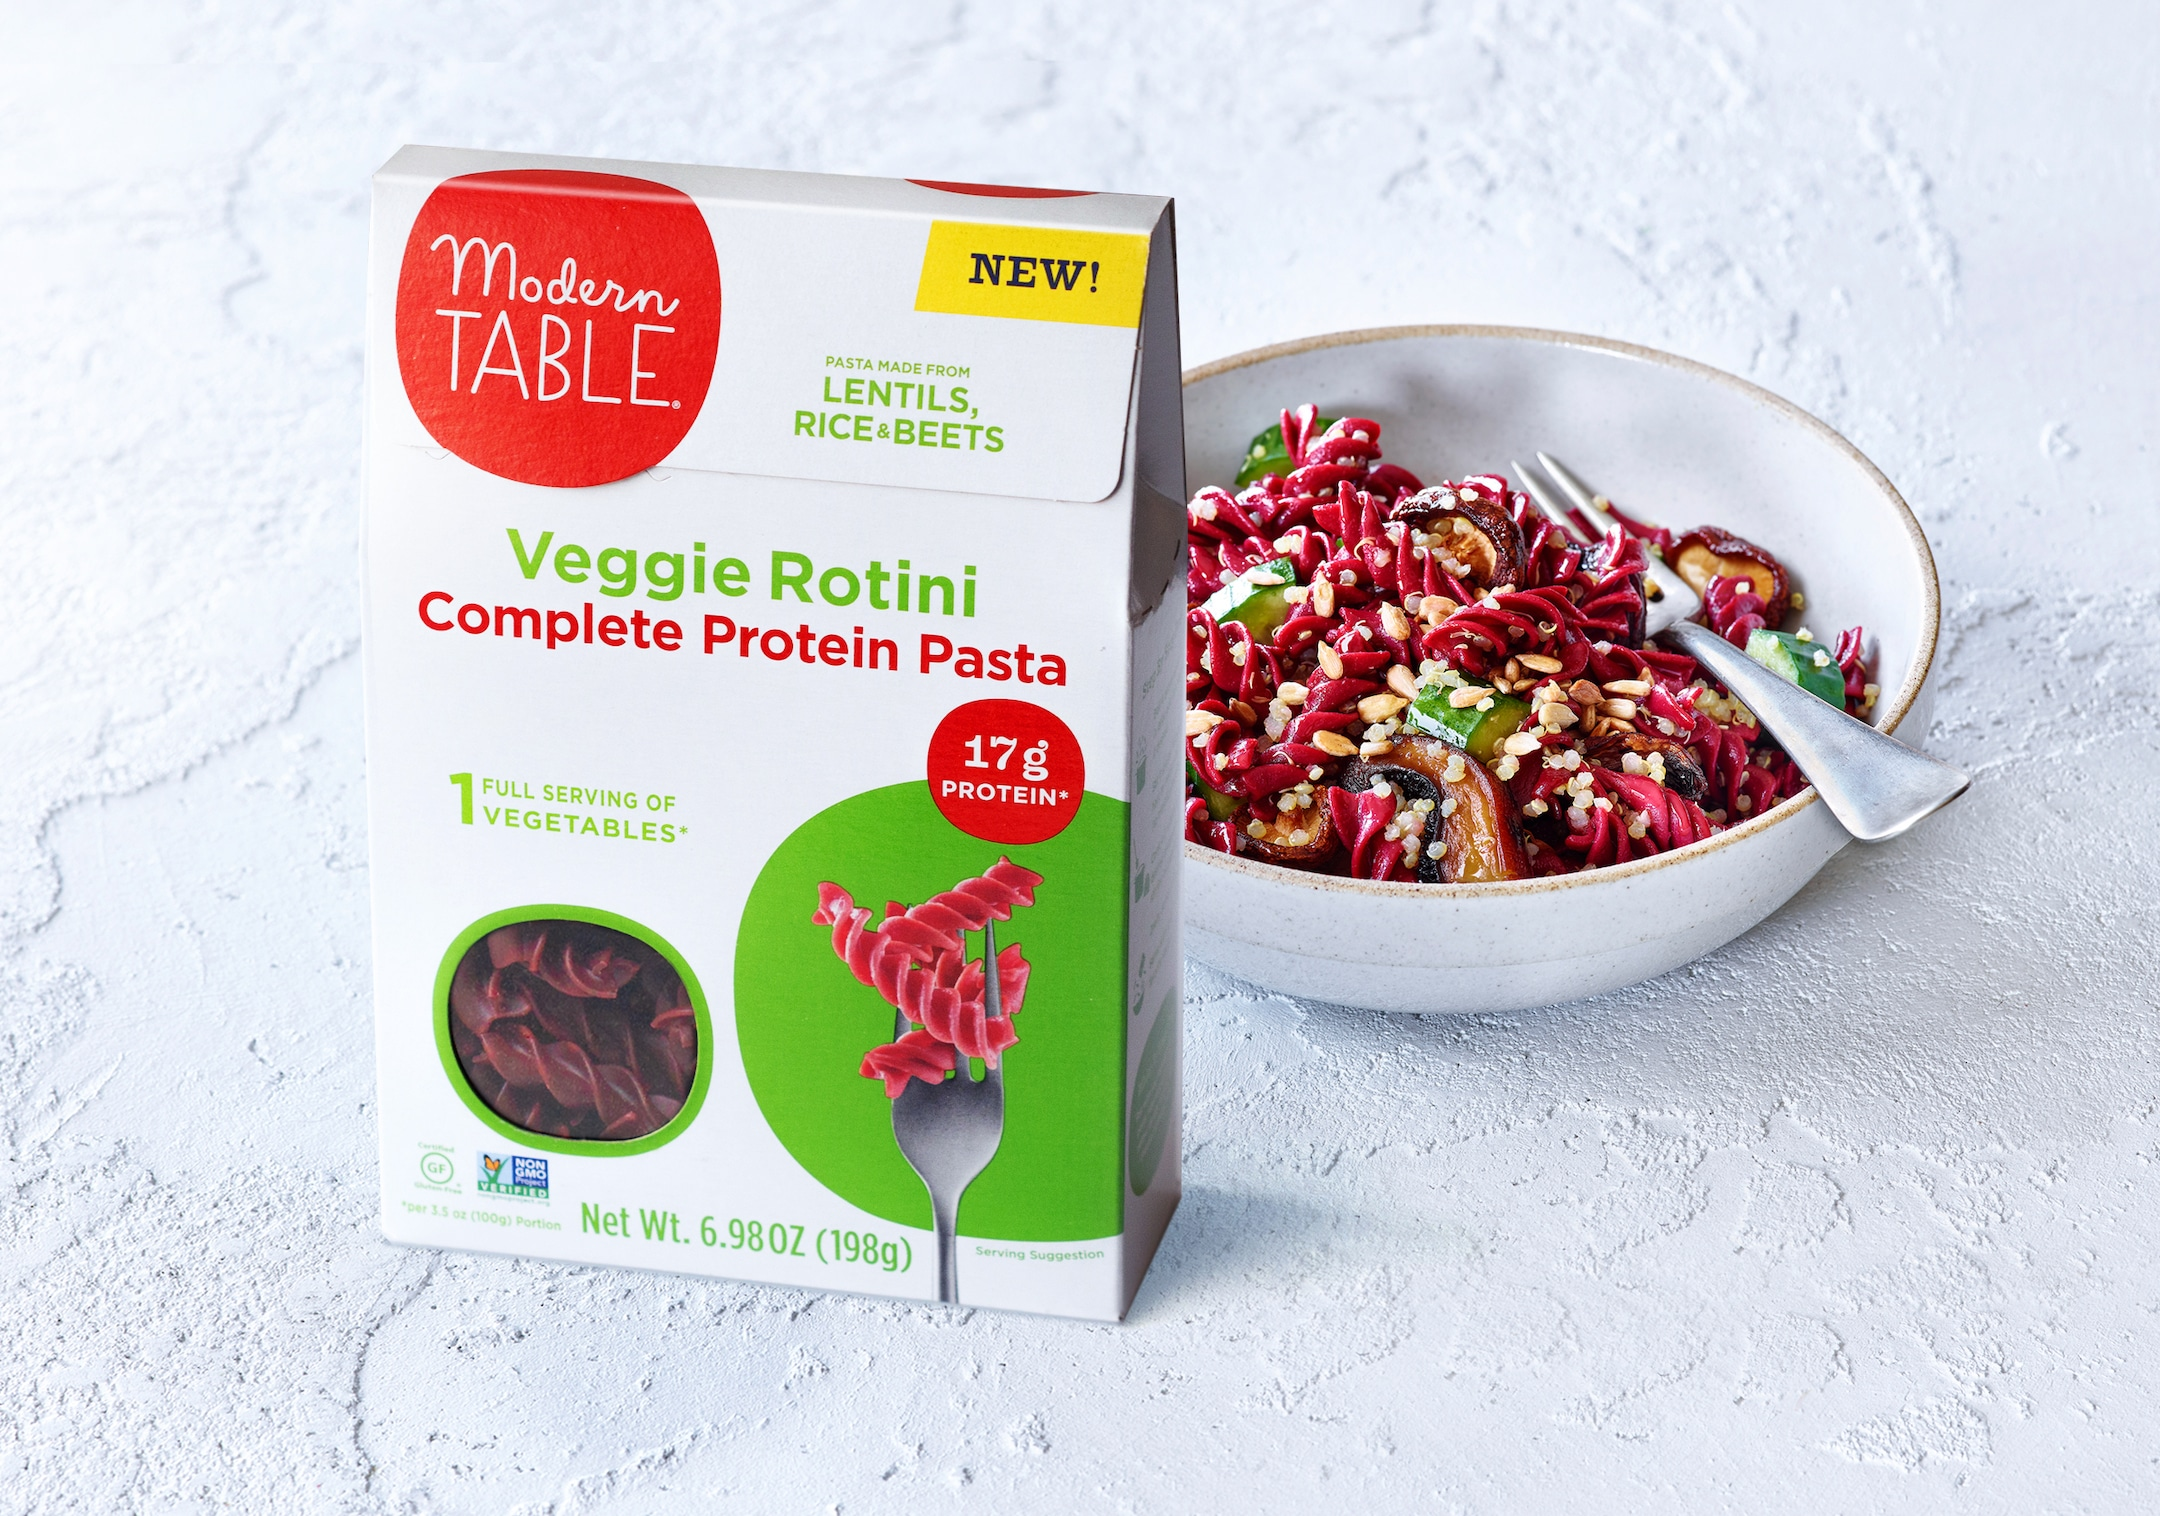 Modern Table Debuts Veggie Pasta Line with Beet Rotini Launch